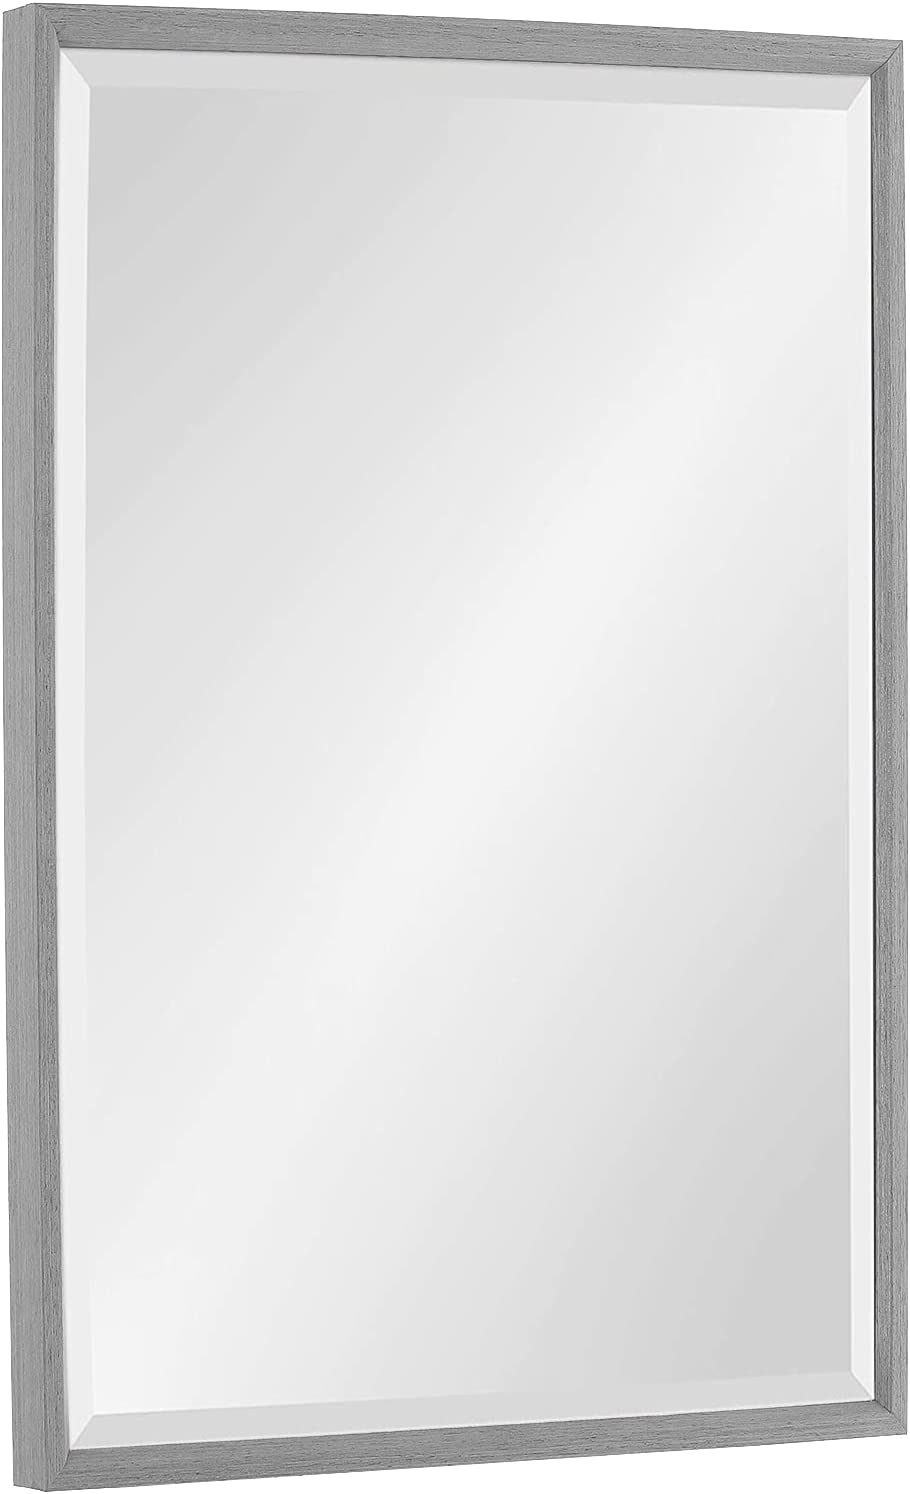 Modern Rectangle Beveled Mirror Wood Framed Wall Mirror Peaked Trim Mirror for Vanity, Bedroom,Bathroom or Entryway Wall-Mounted Horizontal or Vertical Farmhouse Decor 24x36 inch Light Gray